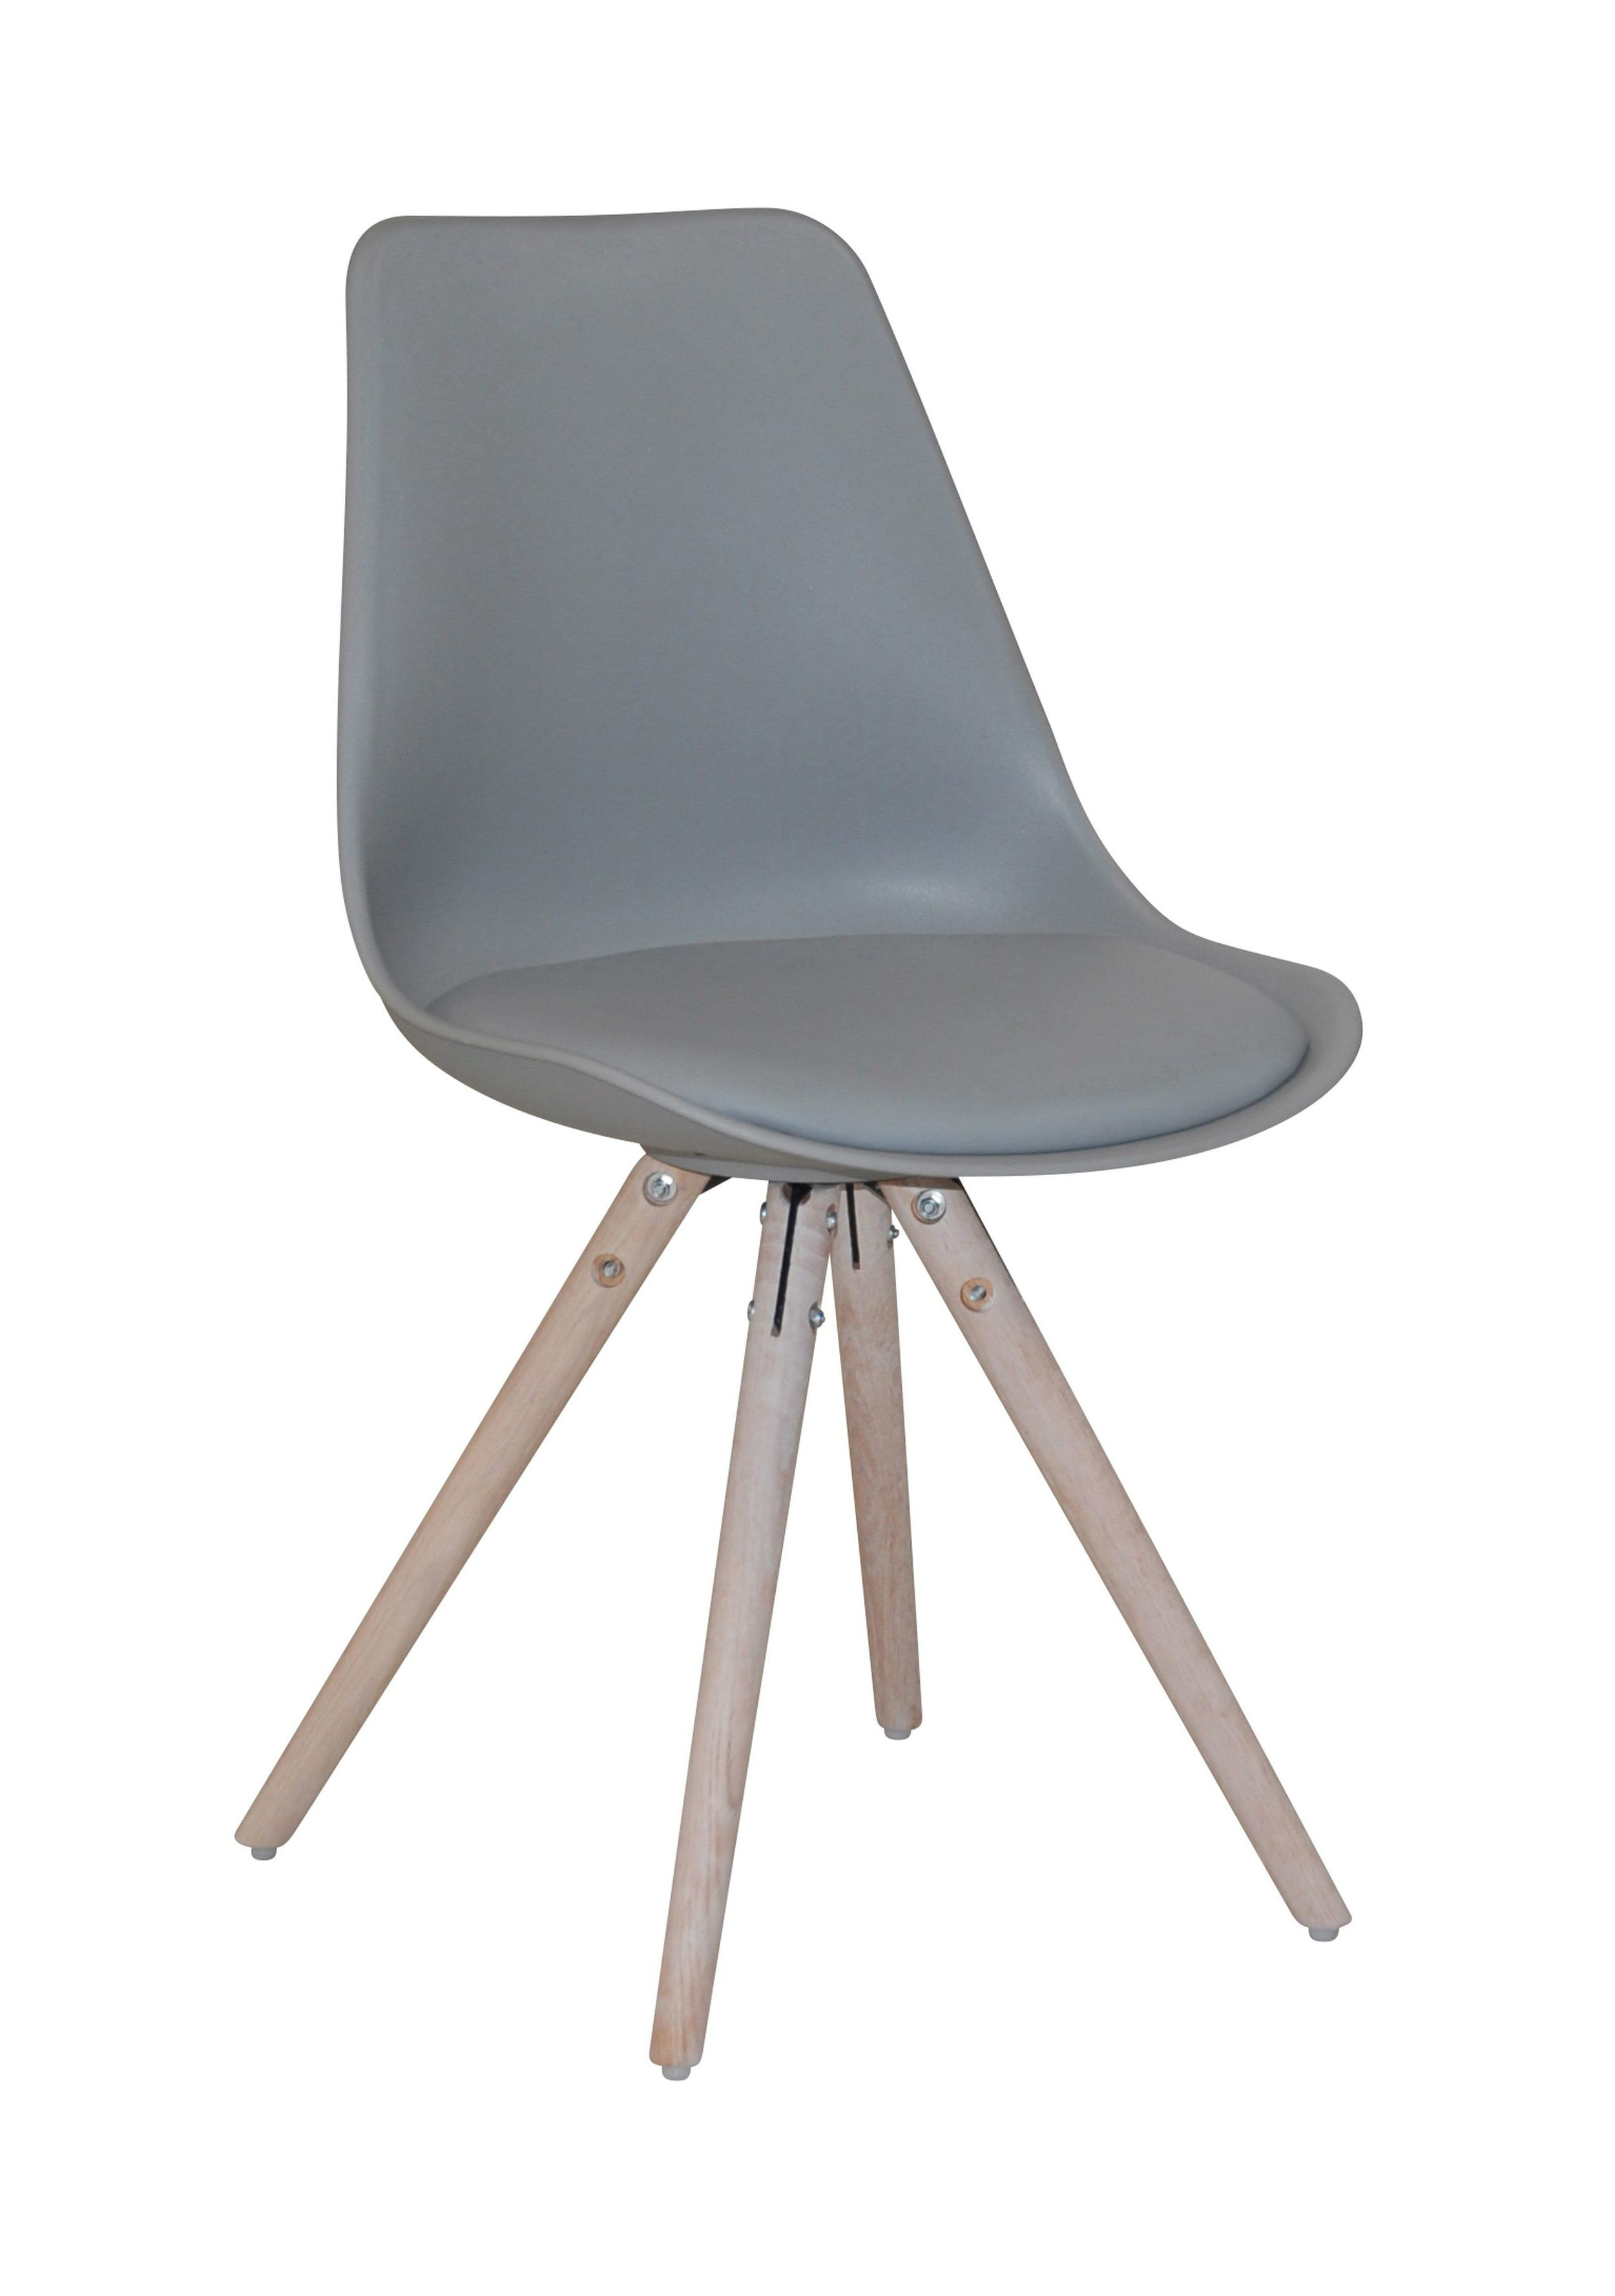 Chaise oslo gris pinterest assises chaises et gris for Chaise oslo